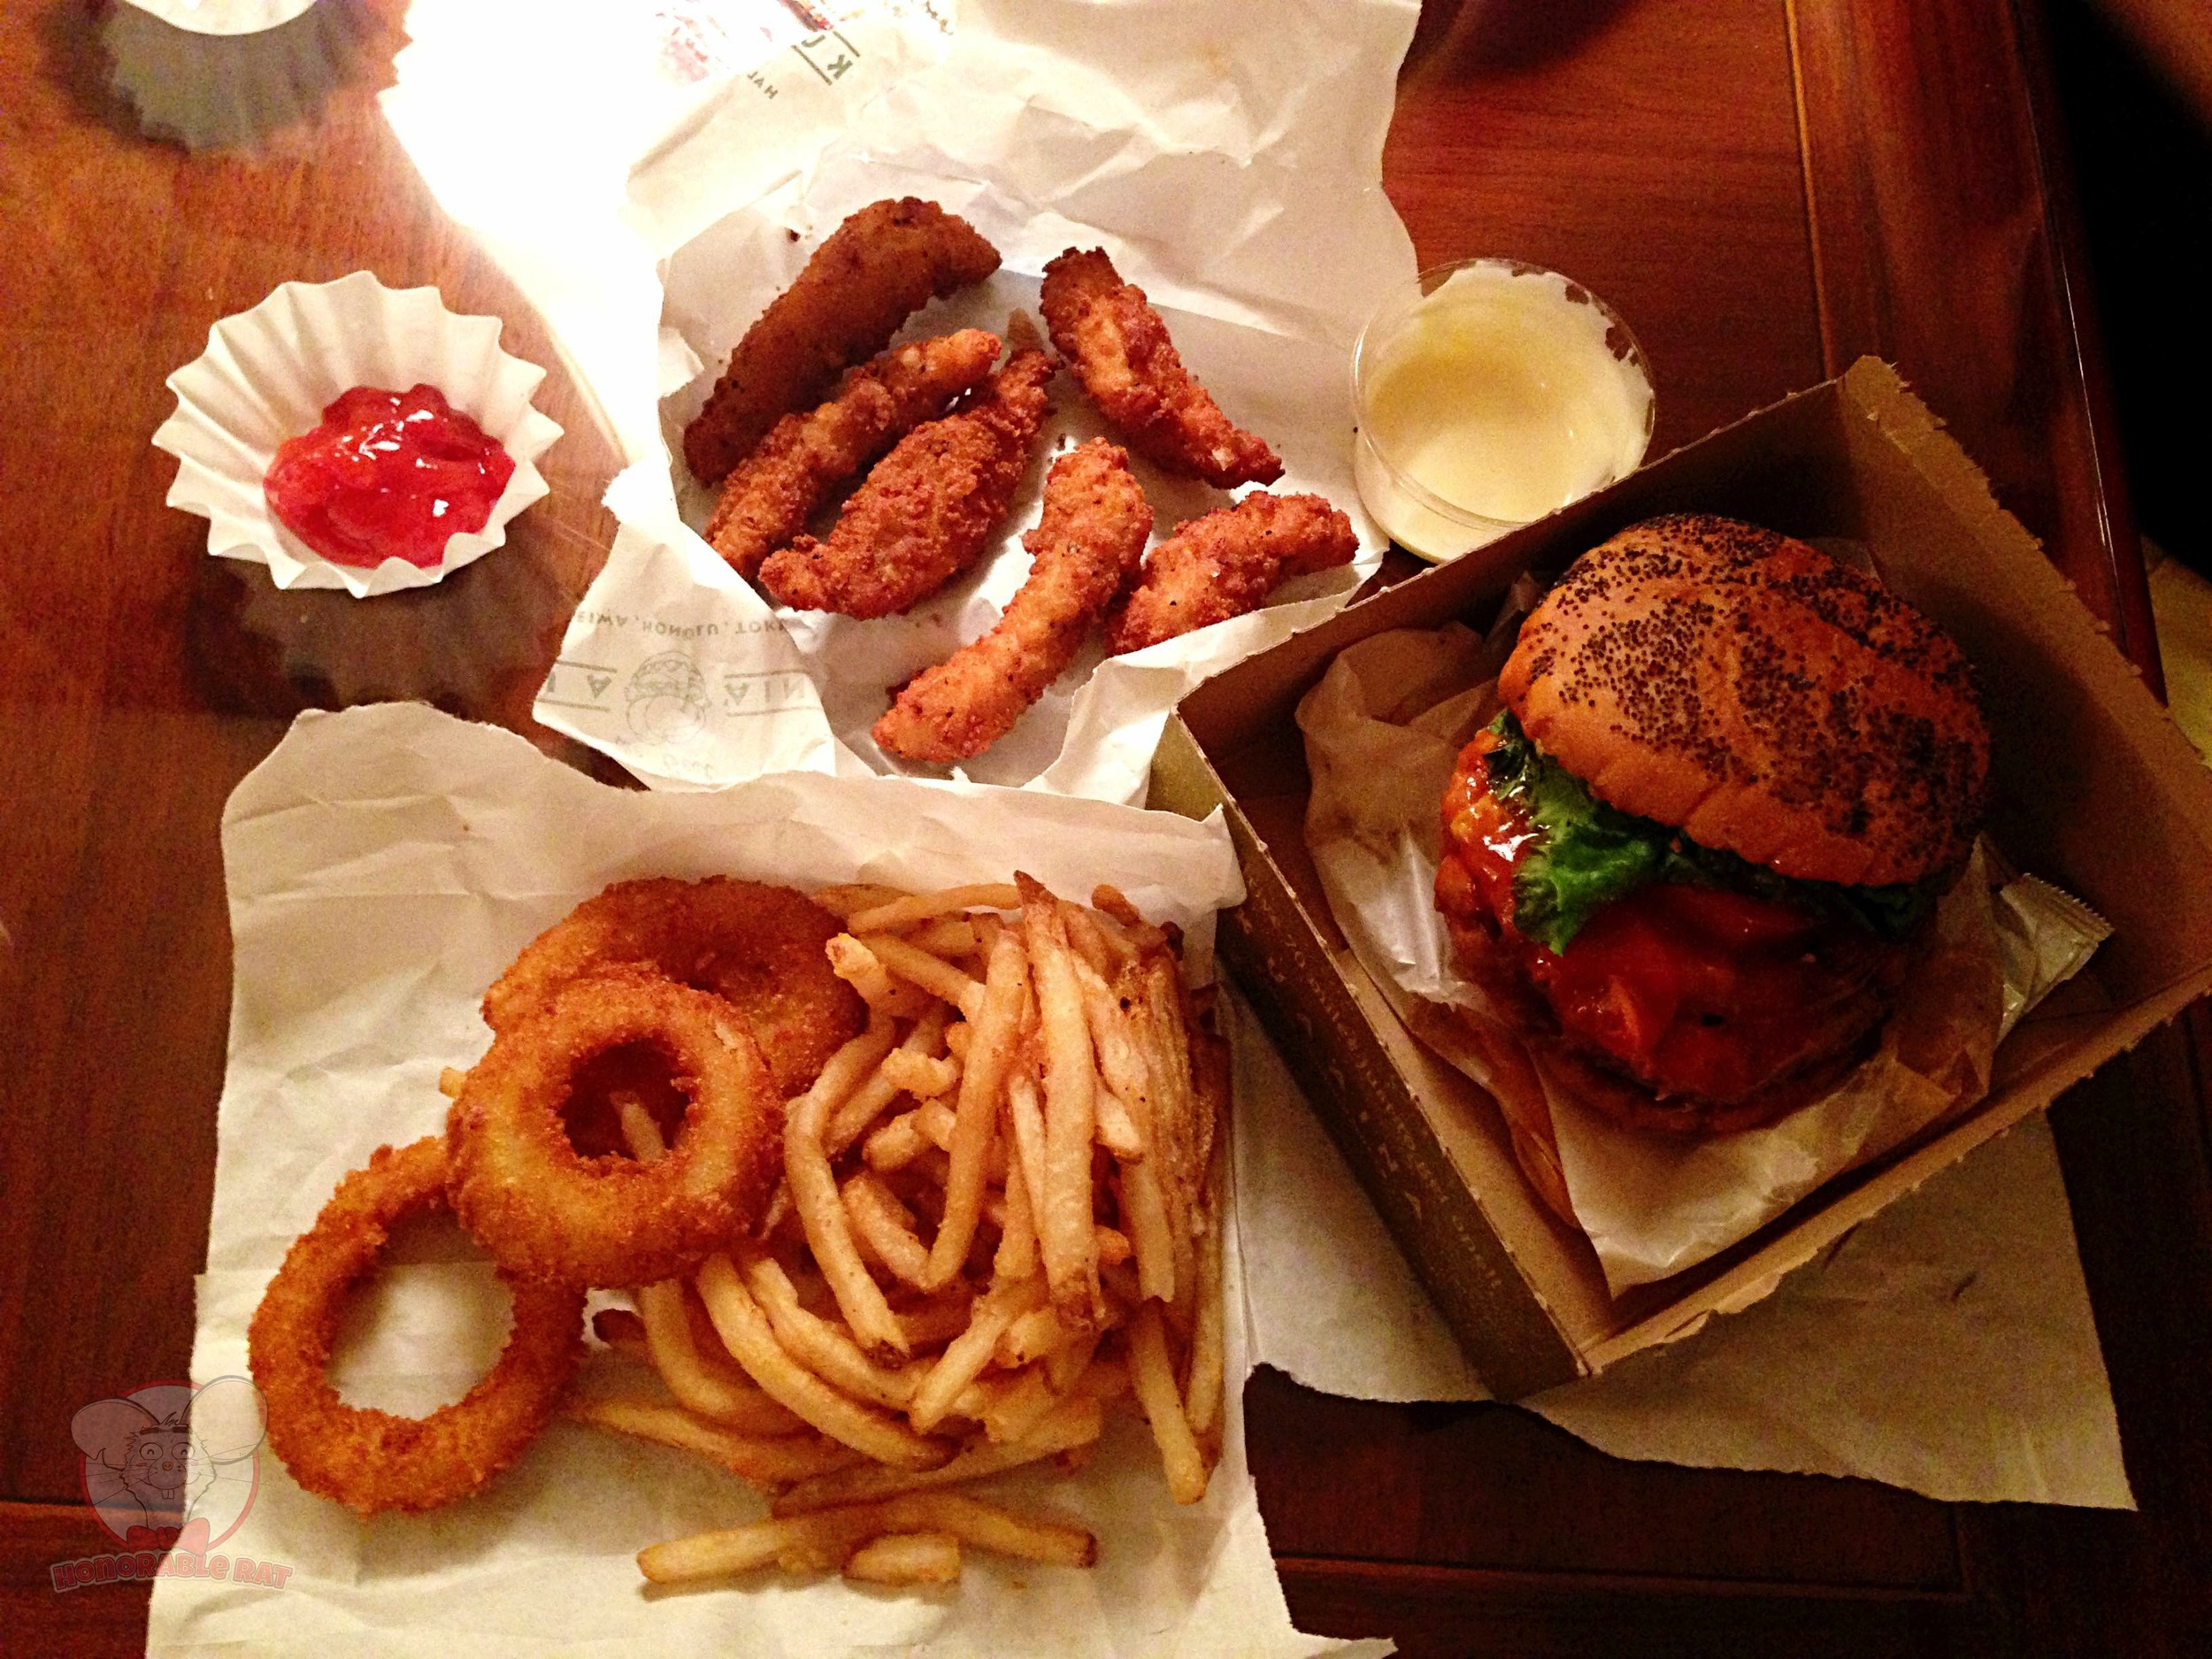 My dinner from Kua'Aina. A seasonal 1/4 pound Kilauea Spicy burger set and of course, The Crispy Finger Chicken